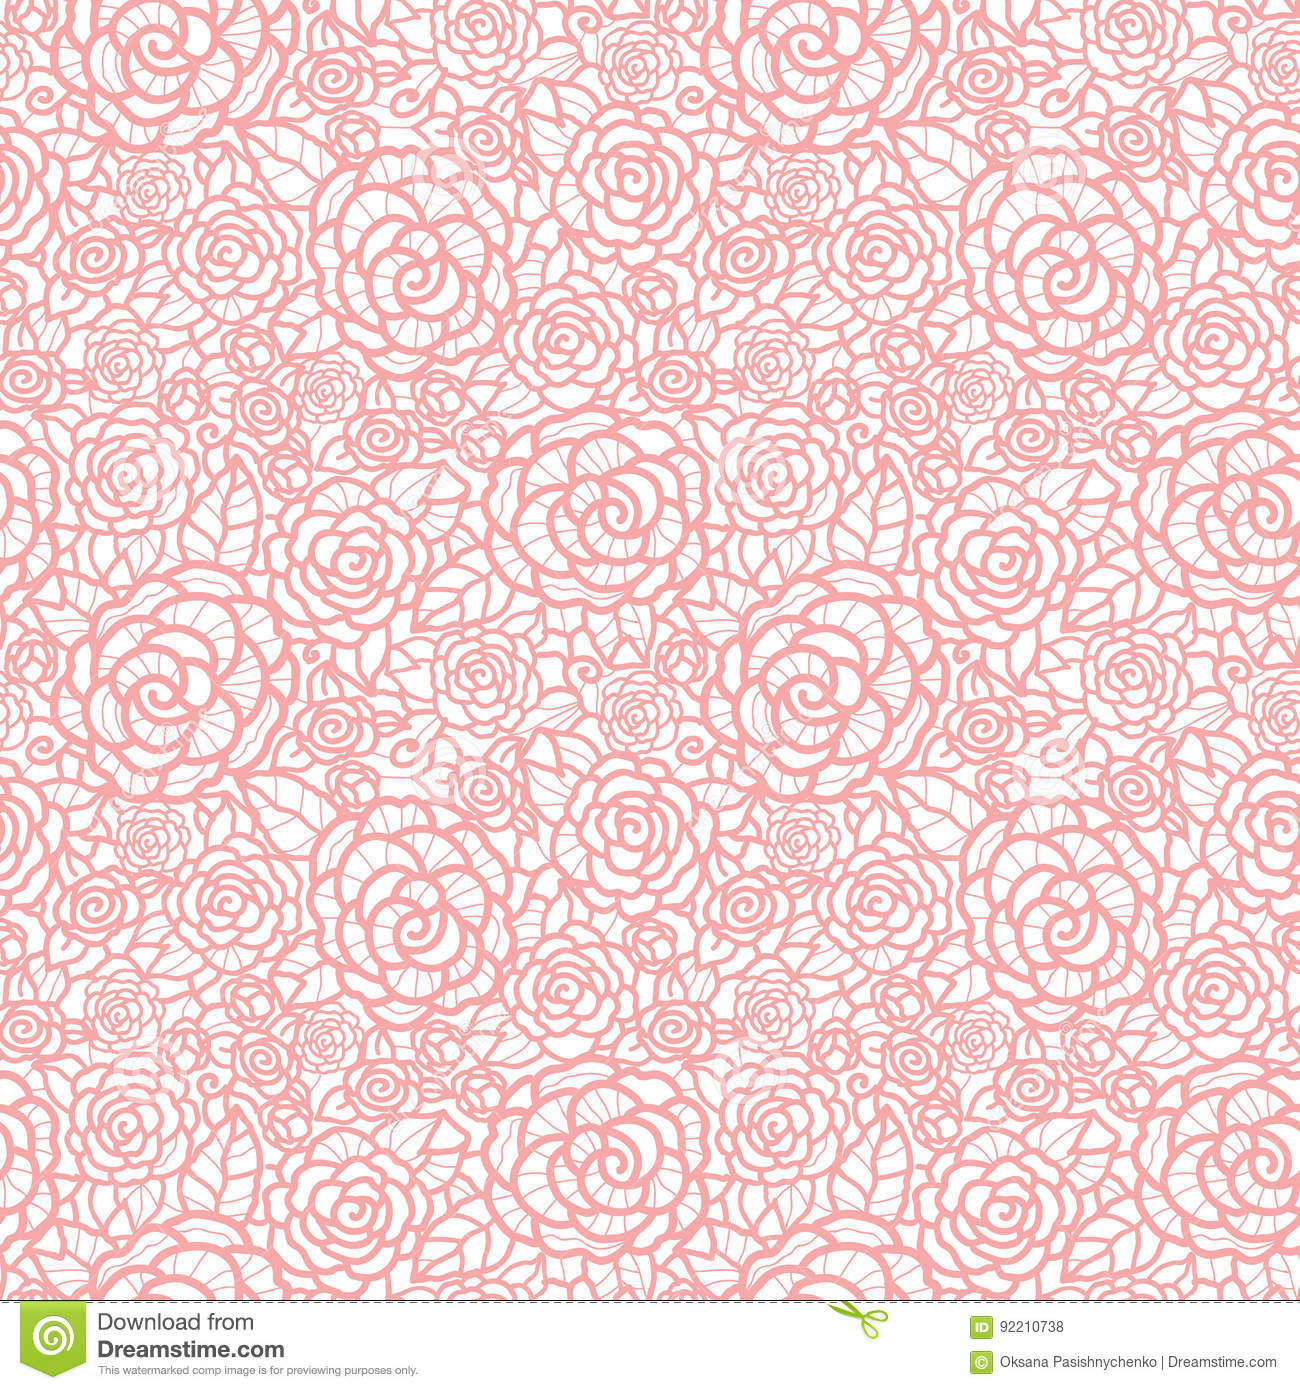 Vector gentle pastel pink lace roses seamless repeat pattern background great for wedding or - Pastel lace wallpaper ...